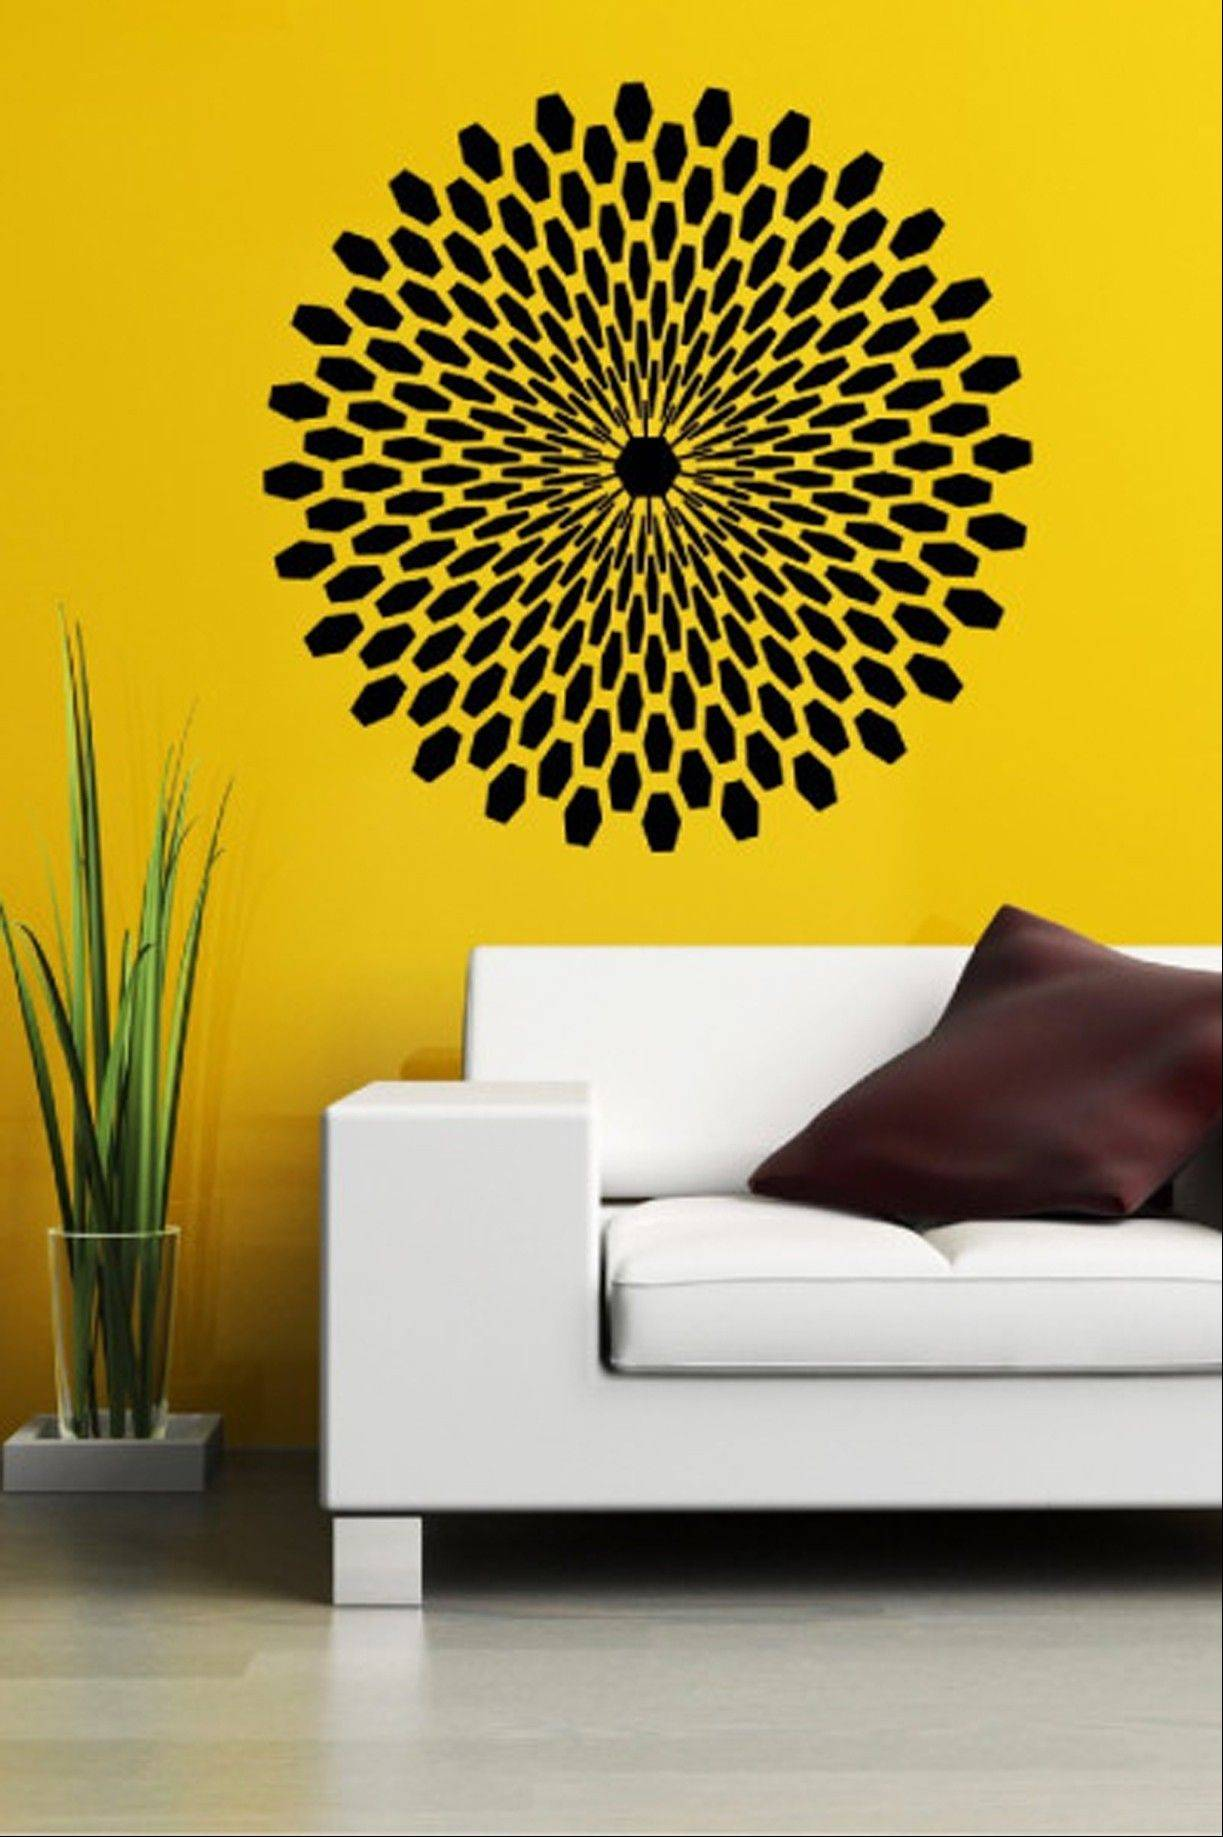 Decals are growing in popularity because they can easily be installed and removed without damaging walls or paint.